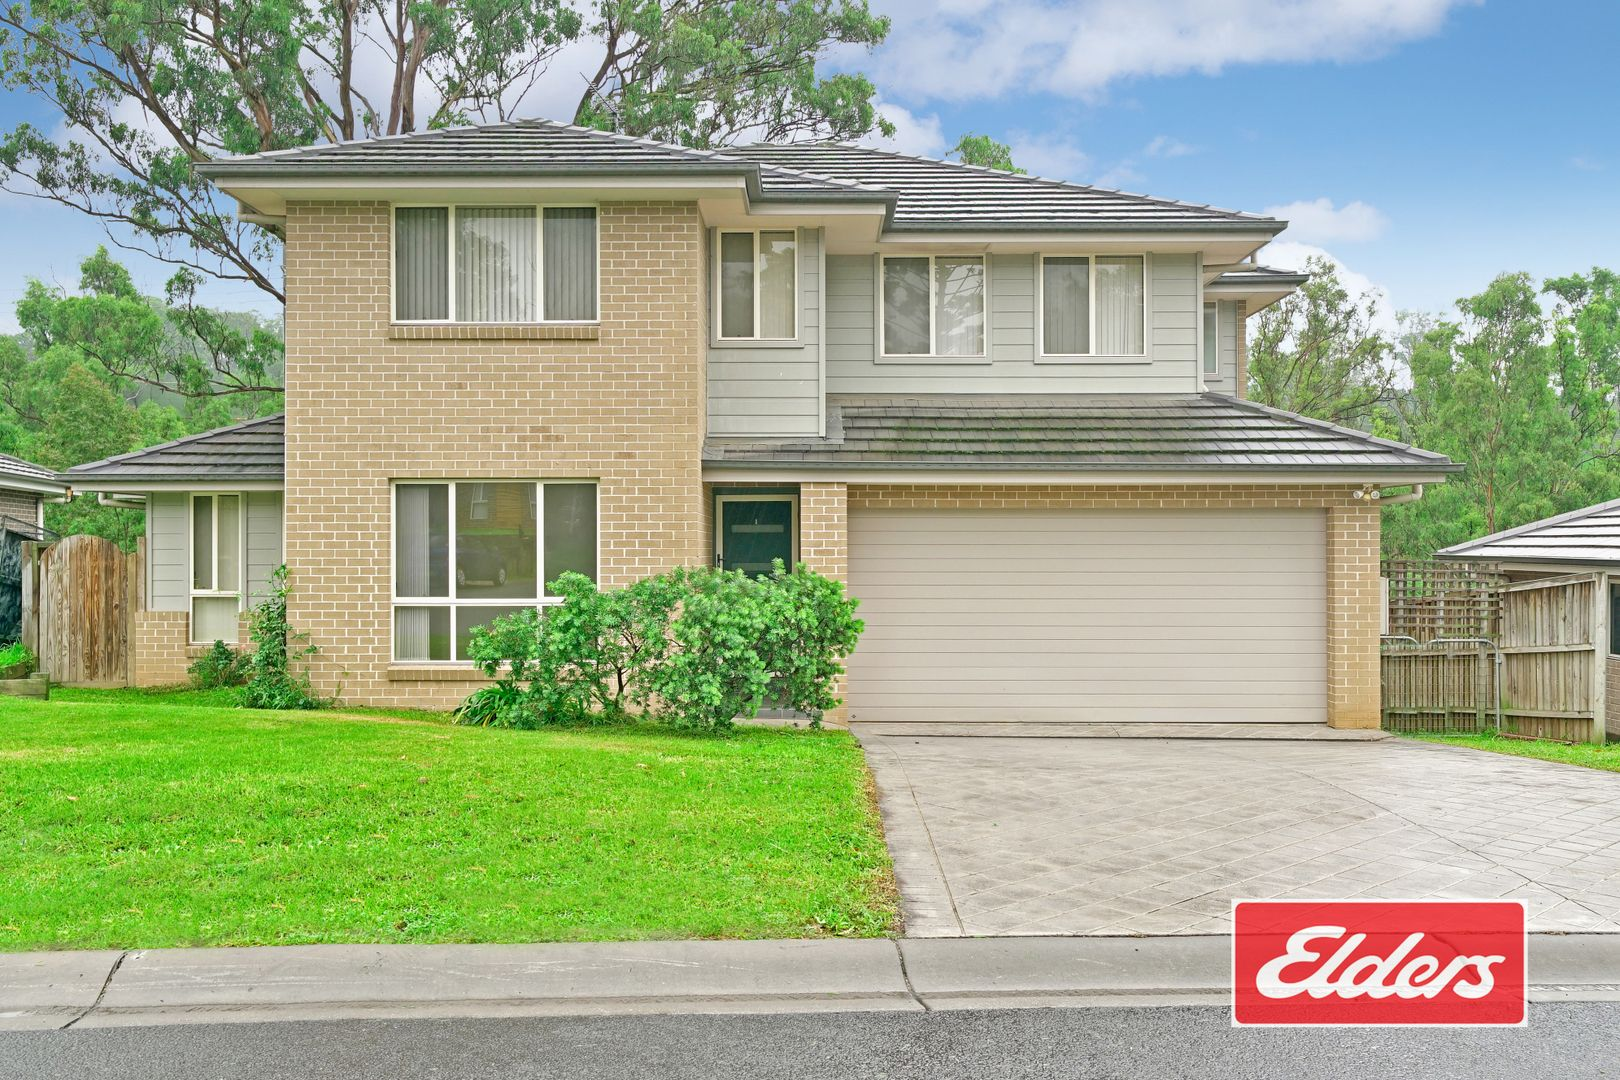 16 TAHMOOR HOUSE COURT, Tahmoor NSW 2573, Image 0